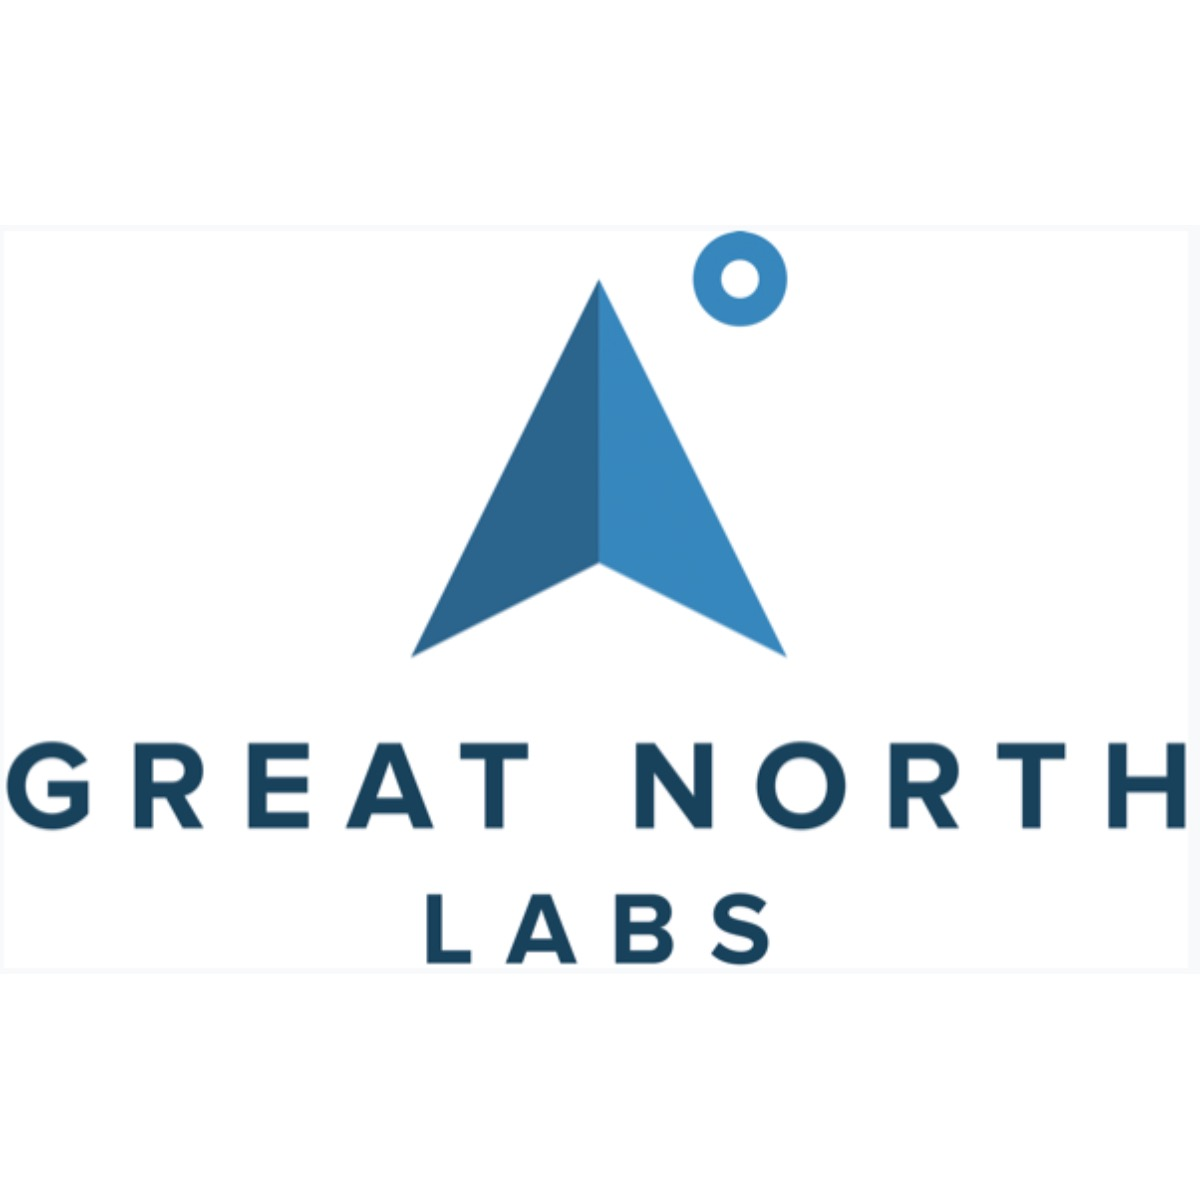 Great North Labs